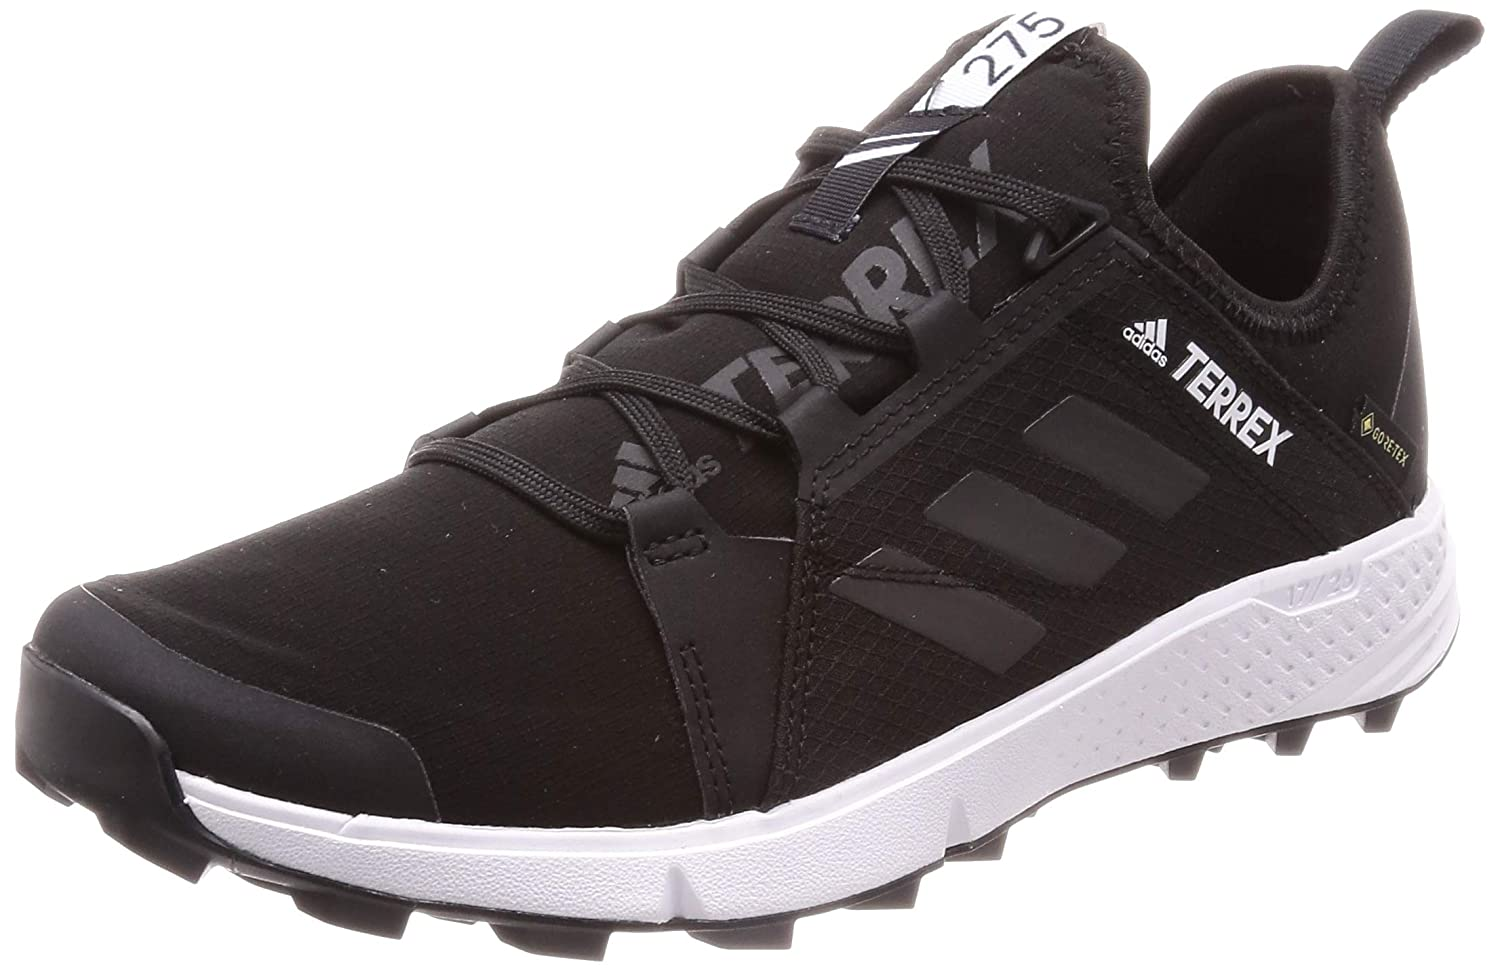 adidas Herren Terrex Agravic Speed Gtx Walkingschuhe